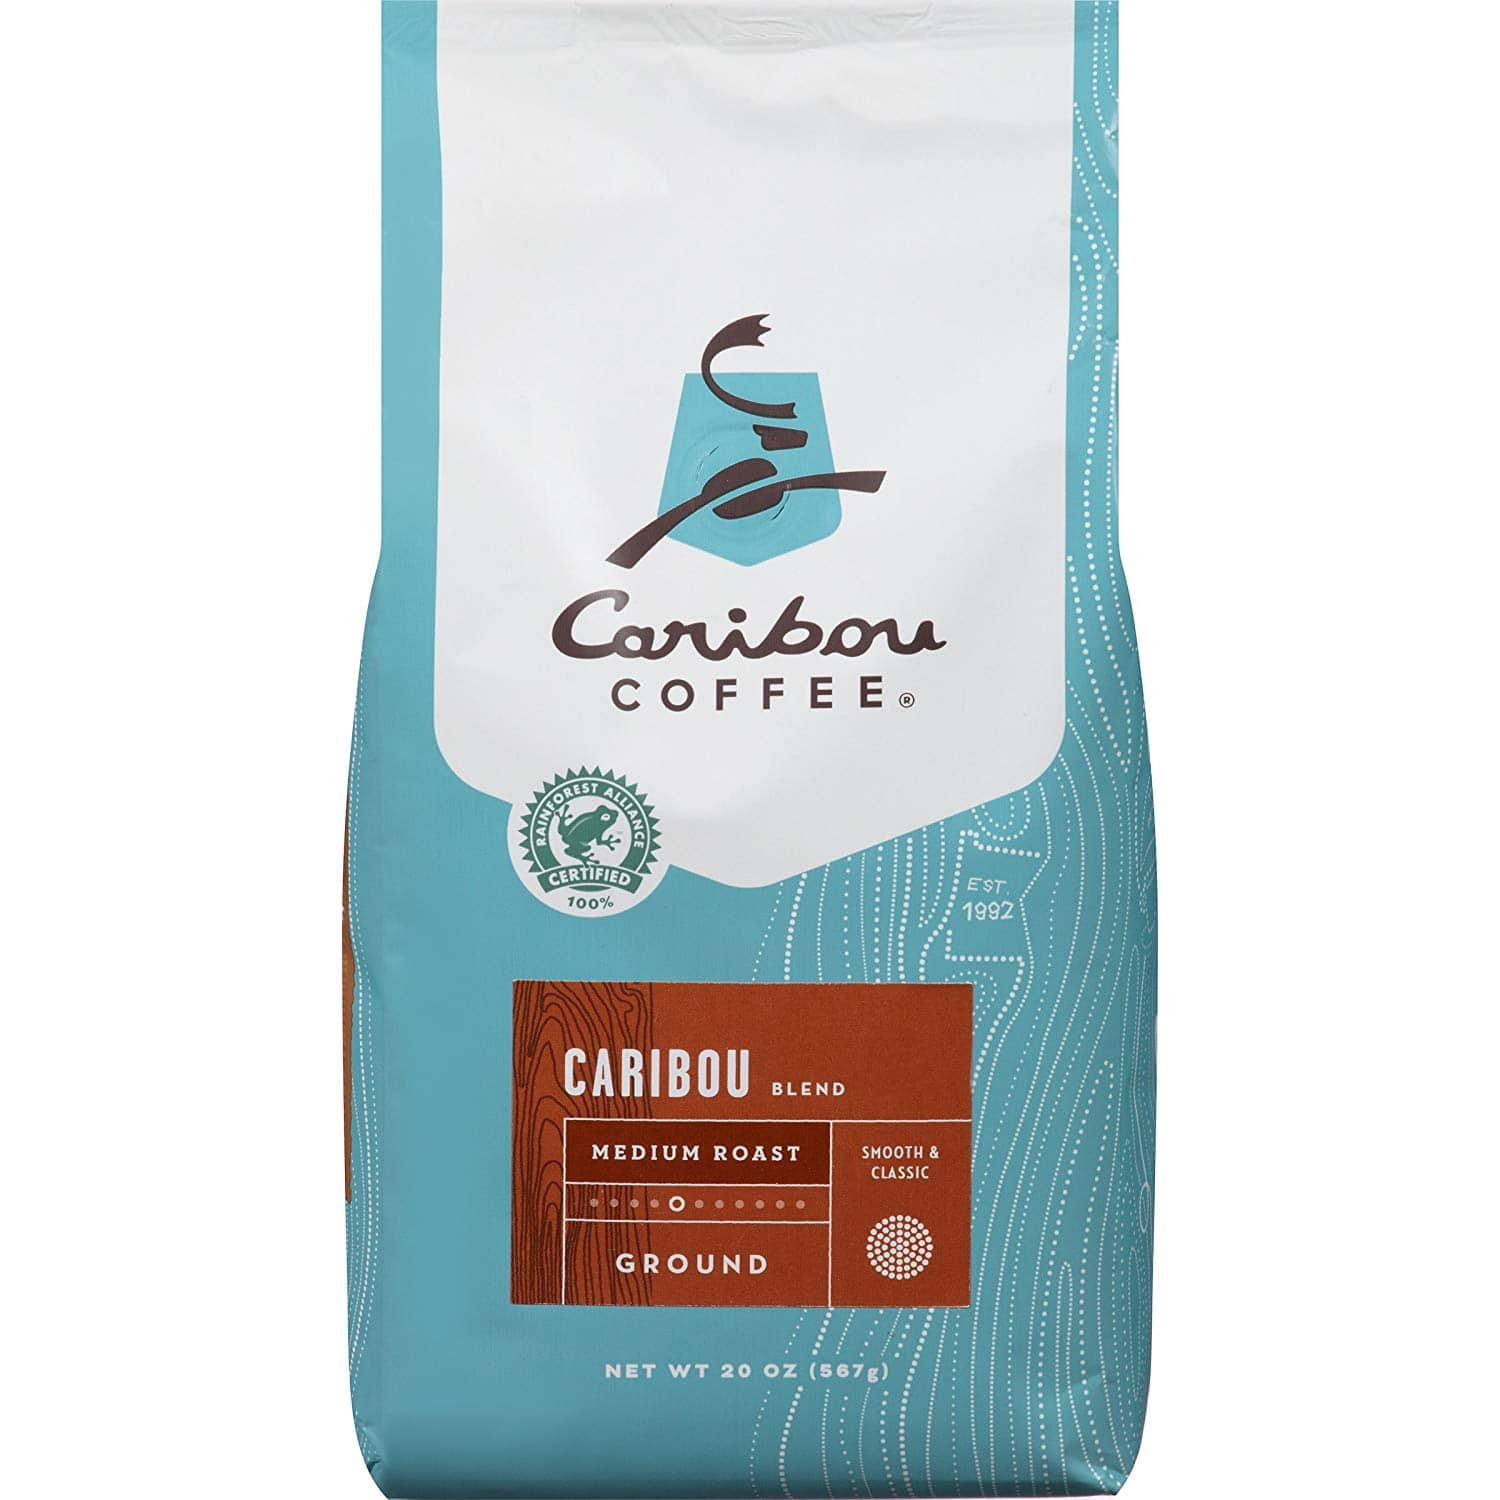 Amazon Warehouse: 20oz Caribou Coffee Medium Roast Caribou Blend Ground Coffee $5.49 + Free Prime Shipping (Expires 10/19 thru 03/20)